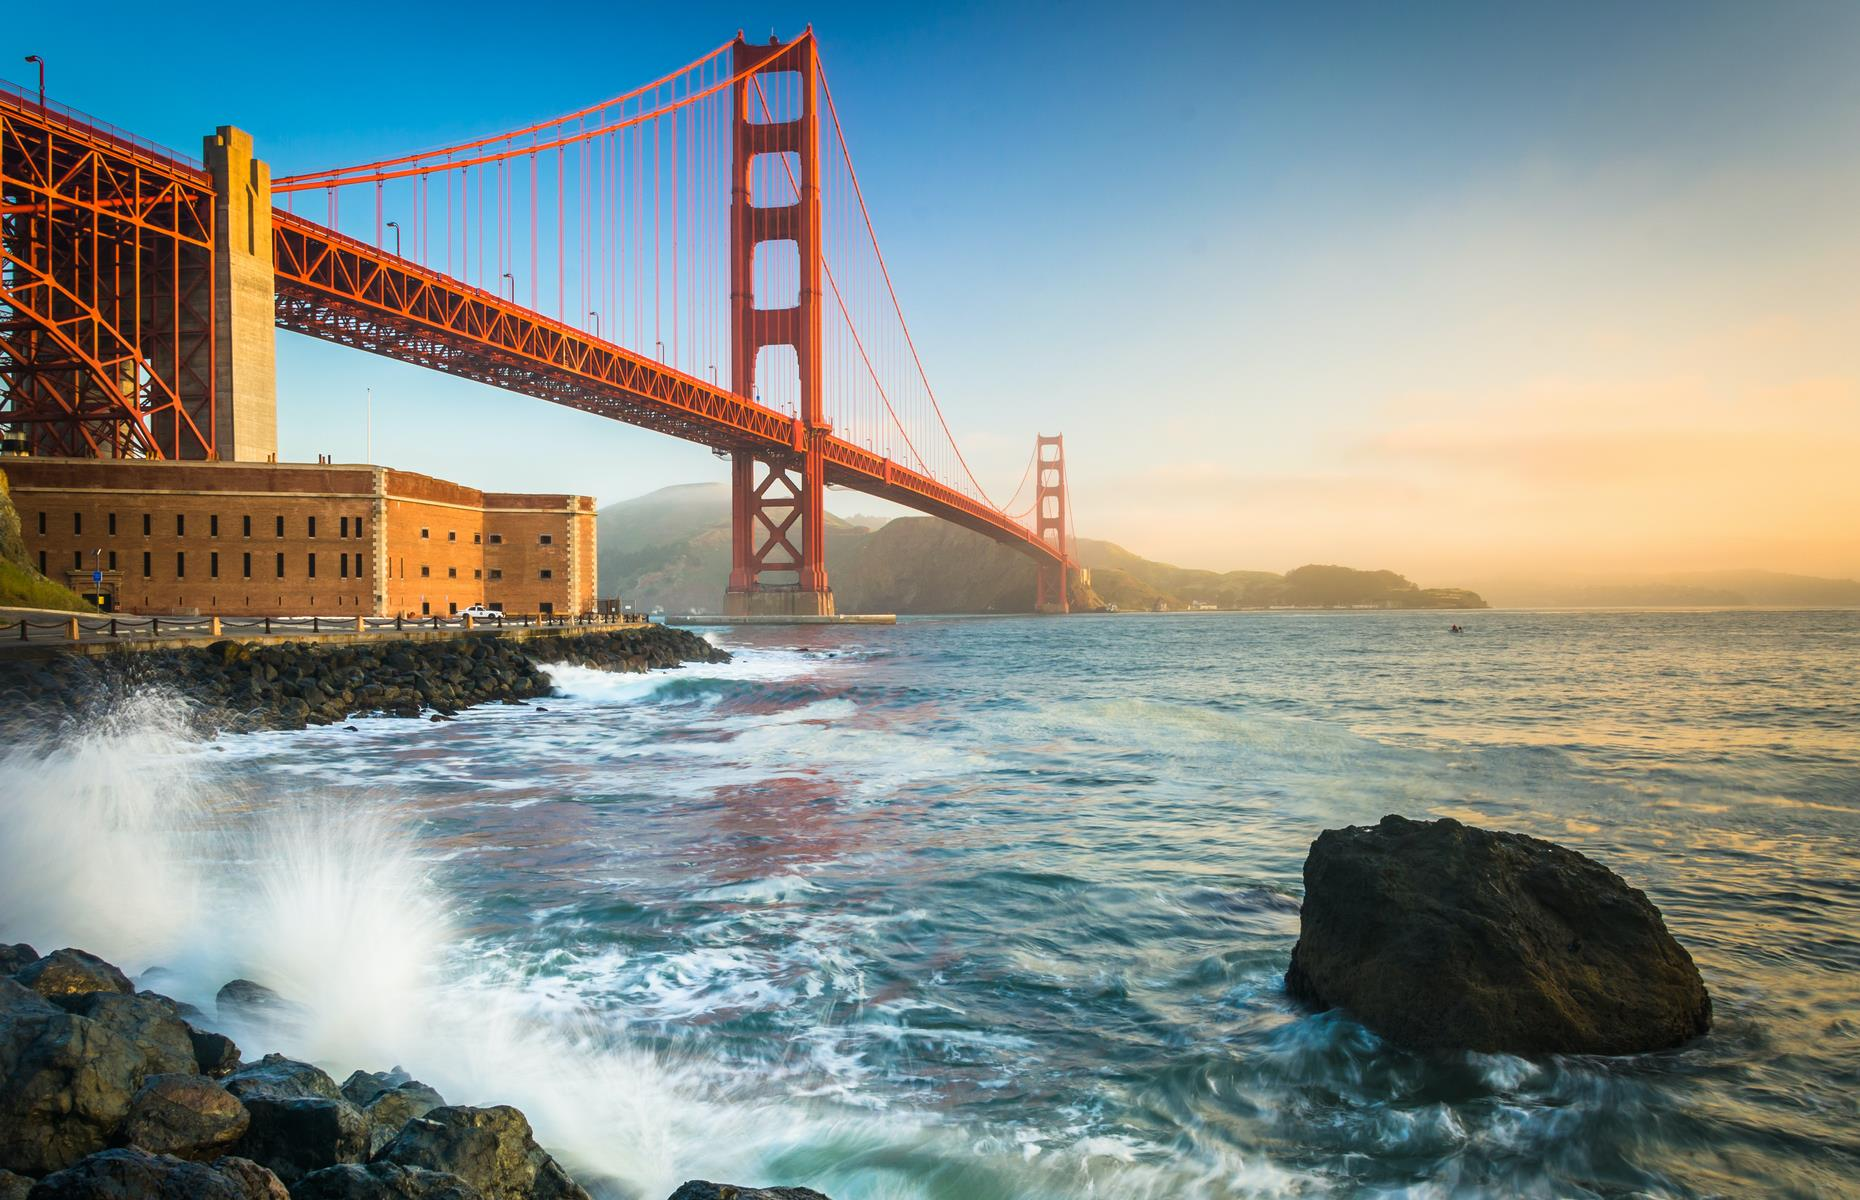 Slide 30 of 41: Fort Point is still a prominent landmark on San Francisco's photogenic bay. It was built between 1853 and 1861 to protect from naval attacks when San Fran became the west coast's most important city after the Gold Rush. However it's now dwarfed by the gorgeous Golden Gate Bridge.